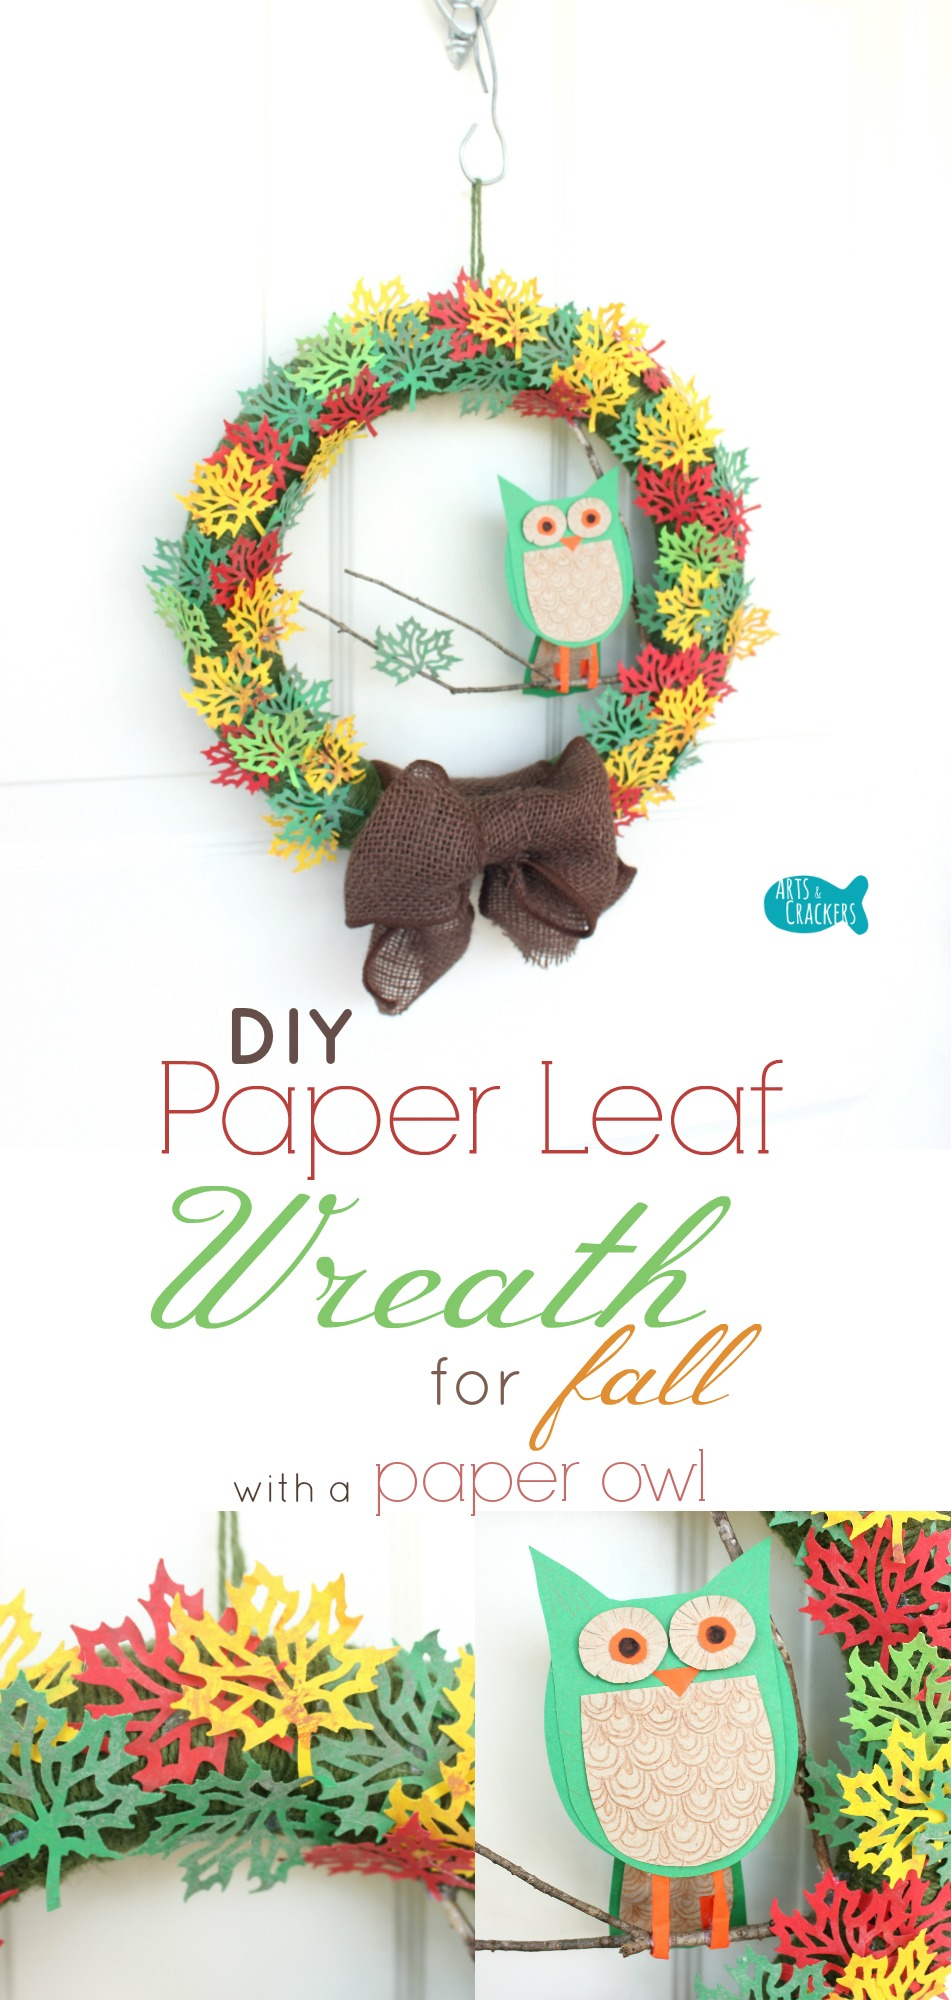 Paper leaf wreath with paper owl fall paper craft tutorial this paper leaf wreath is perfect for fall learn how to create this autumn paper jeuxipadfo Choice Image